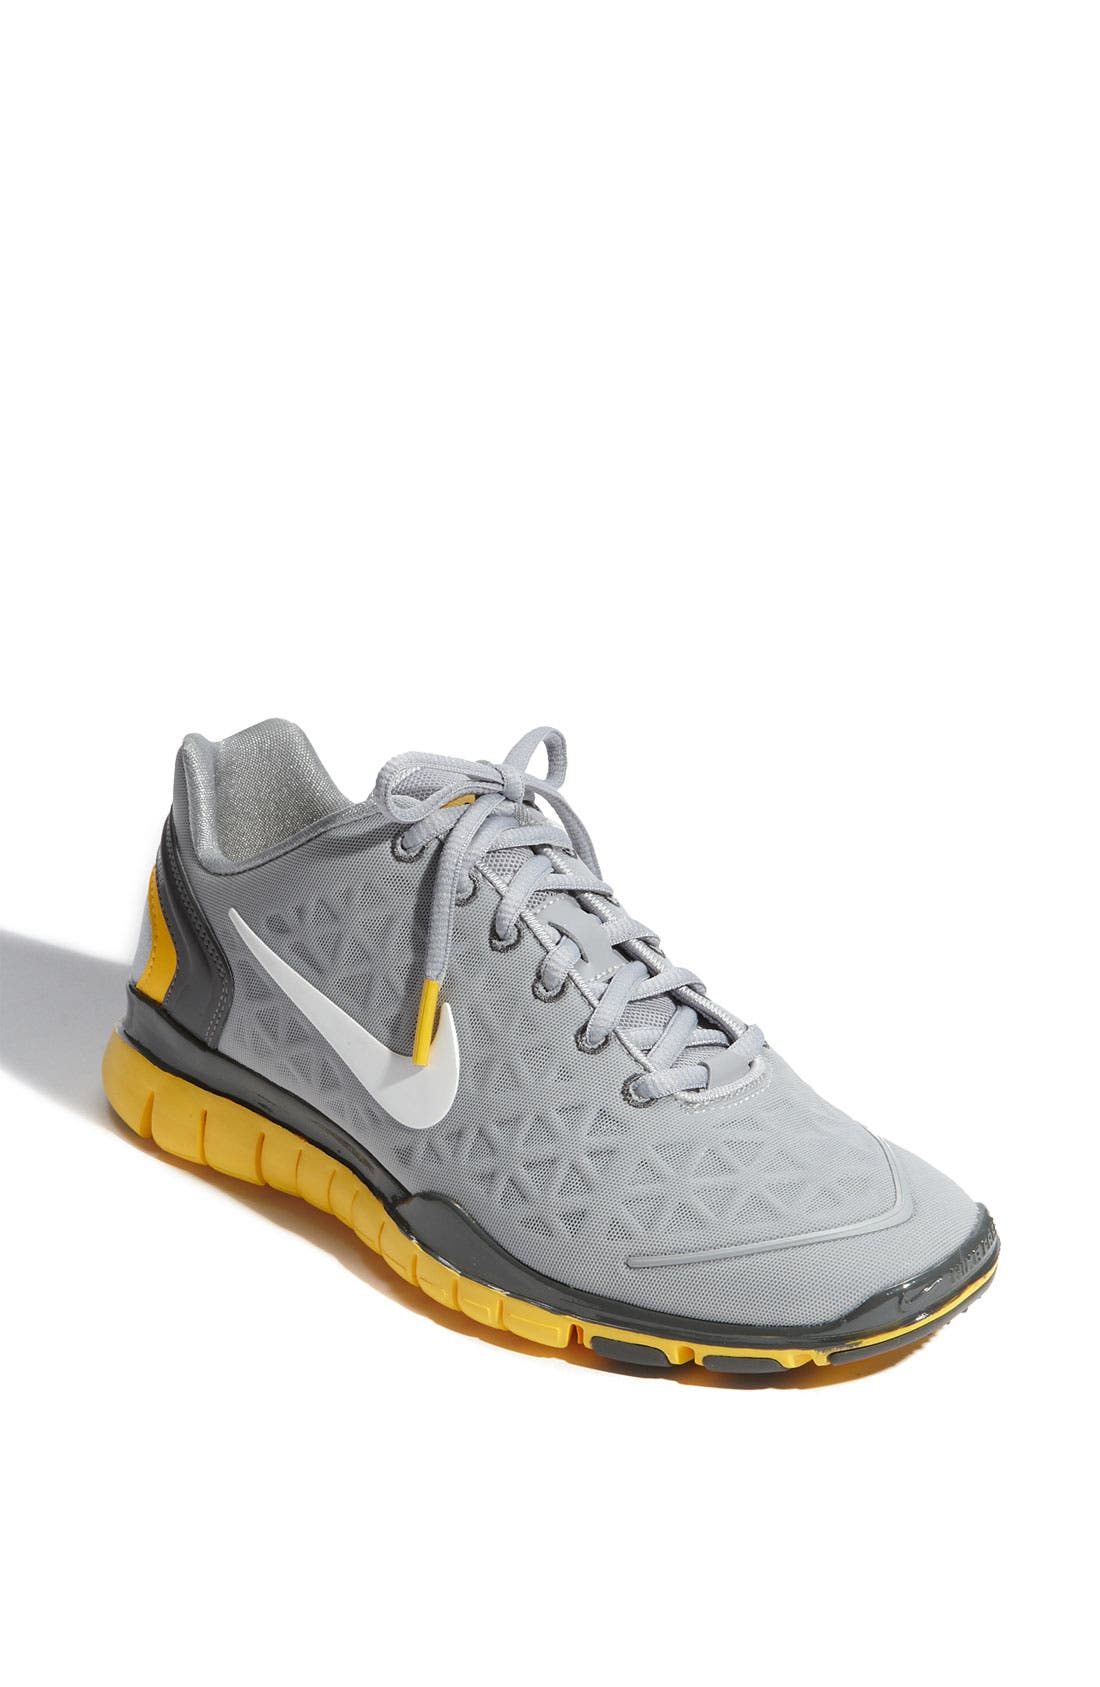 Main Image - Nike 'Free TR Fit 2 LAF' Training Shoe (Women)